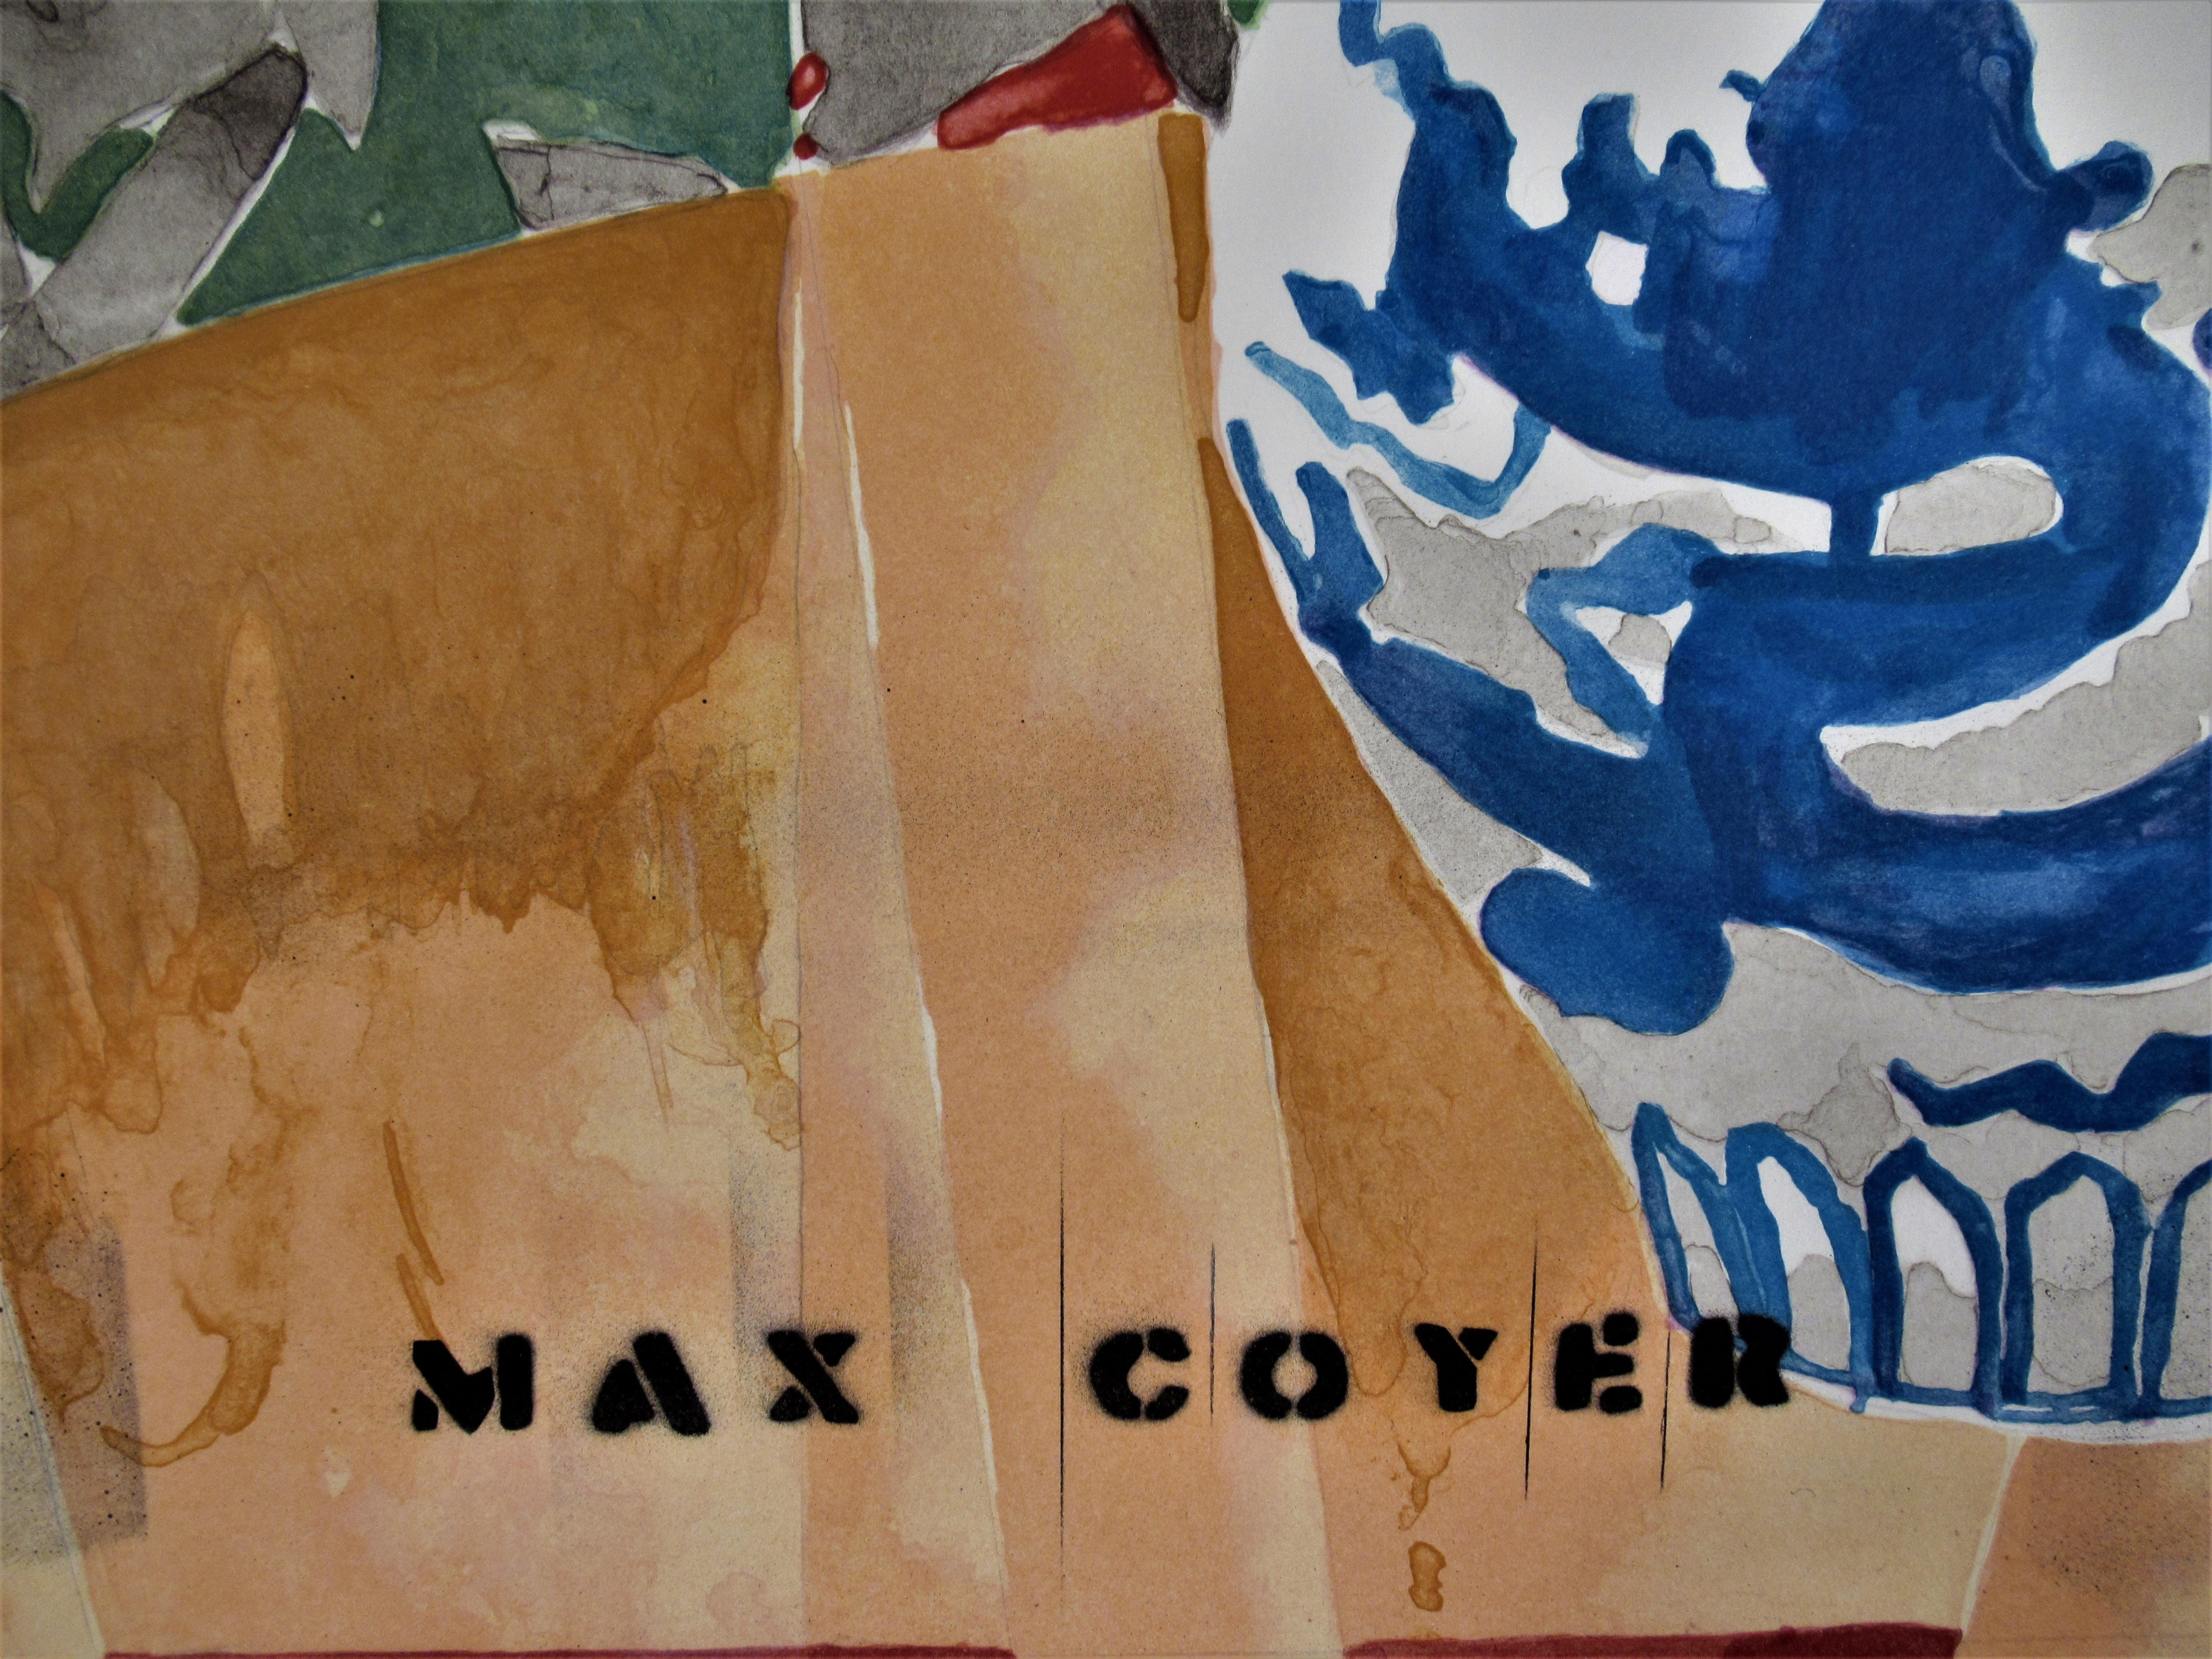 Max coyer paintings #1